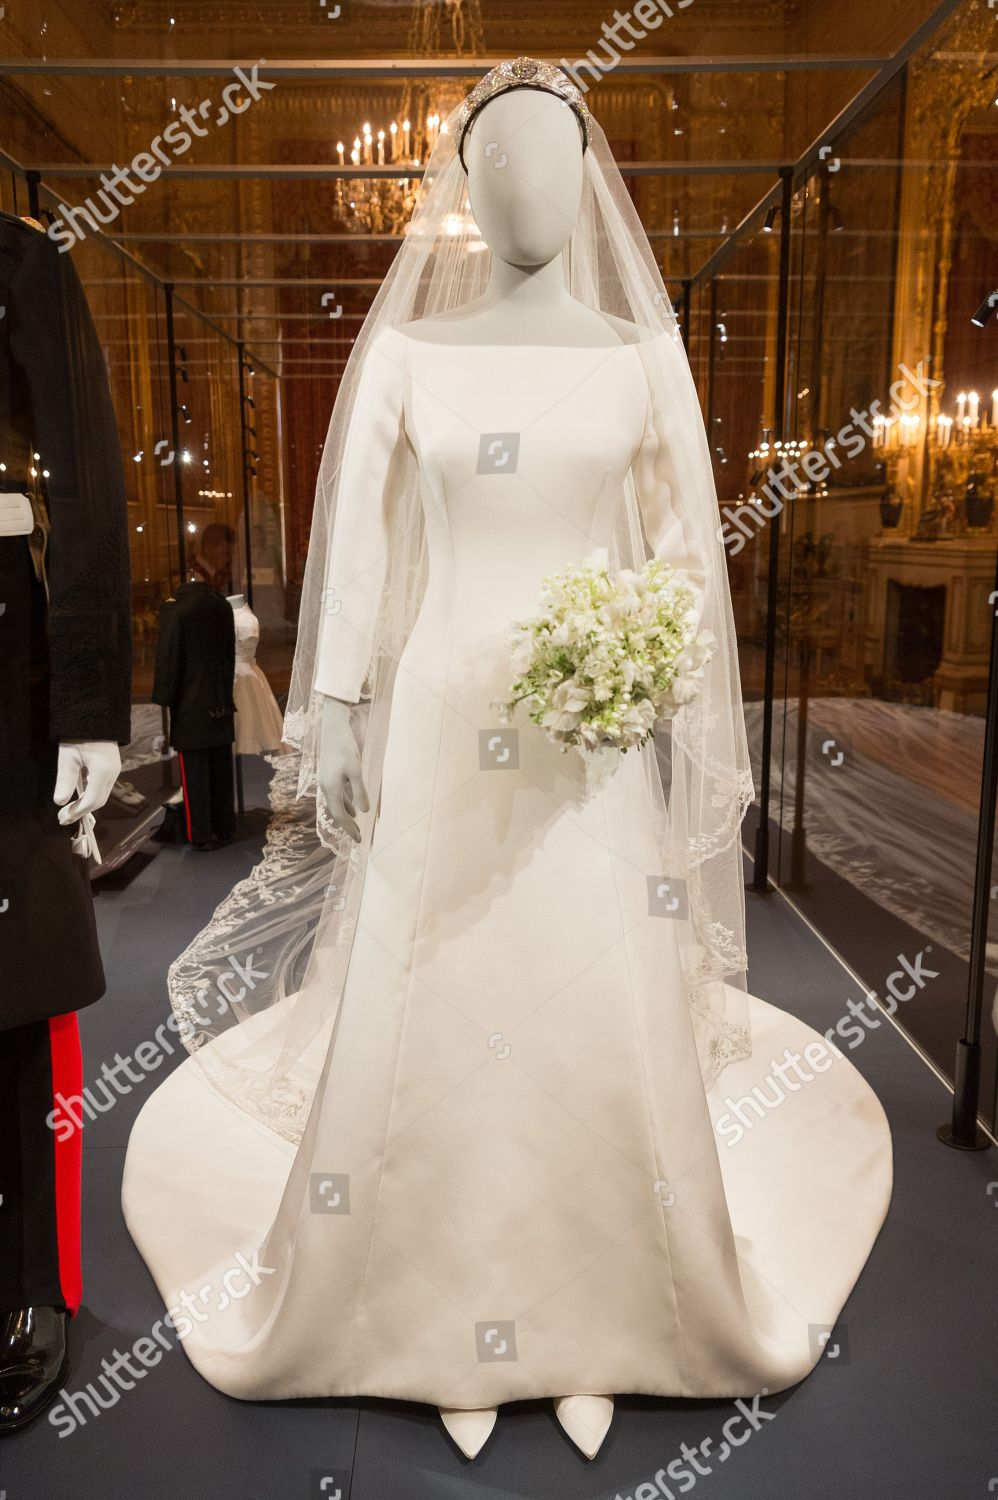 duchess sussexs wedding dress which created by editorial stock photo stock image shutterstock https www shutterstock com editorial image editorial a royal wedding the duke and duchess of sussex exhibition windsor uk 25 oct 2018 9944072l